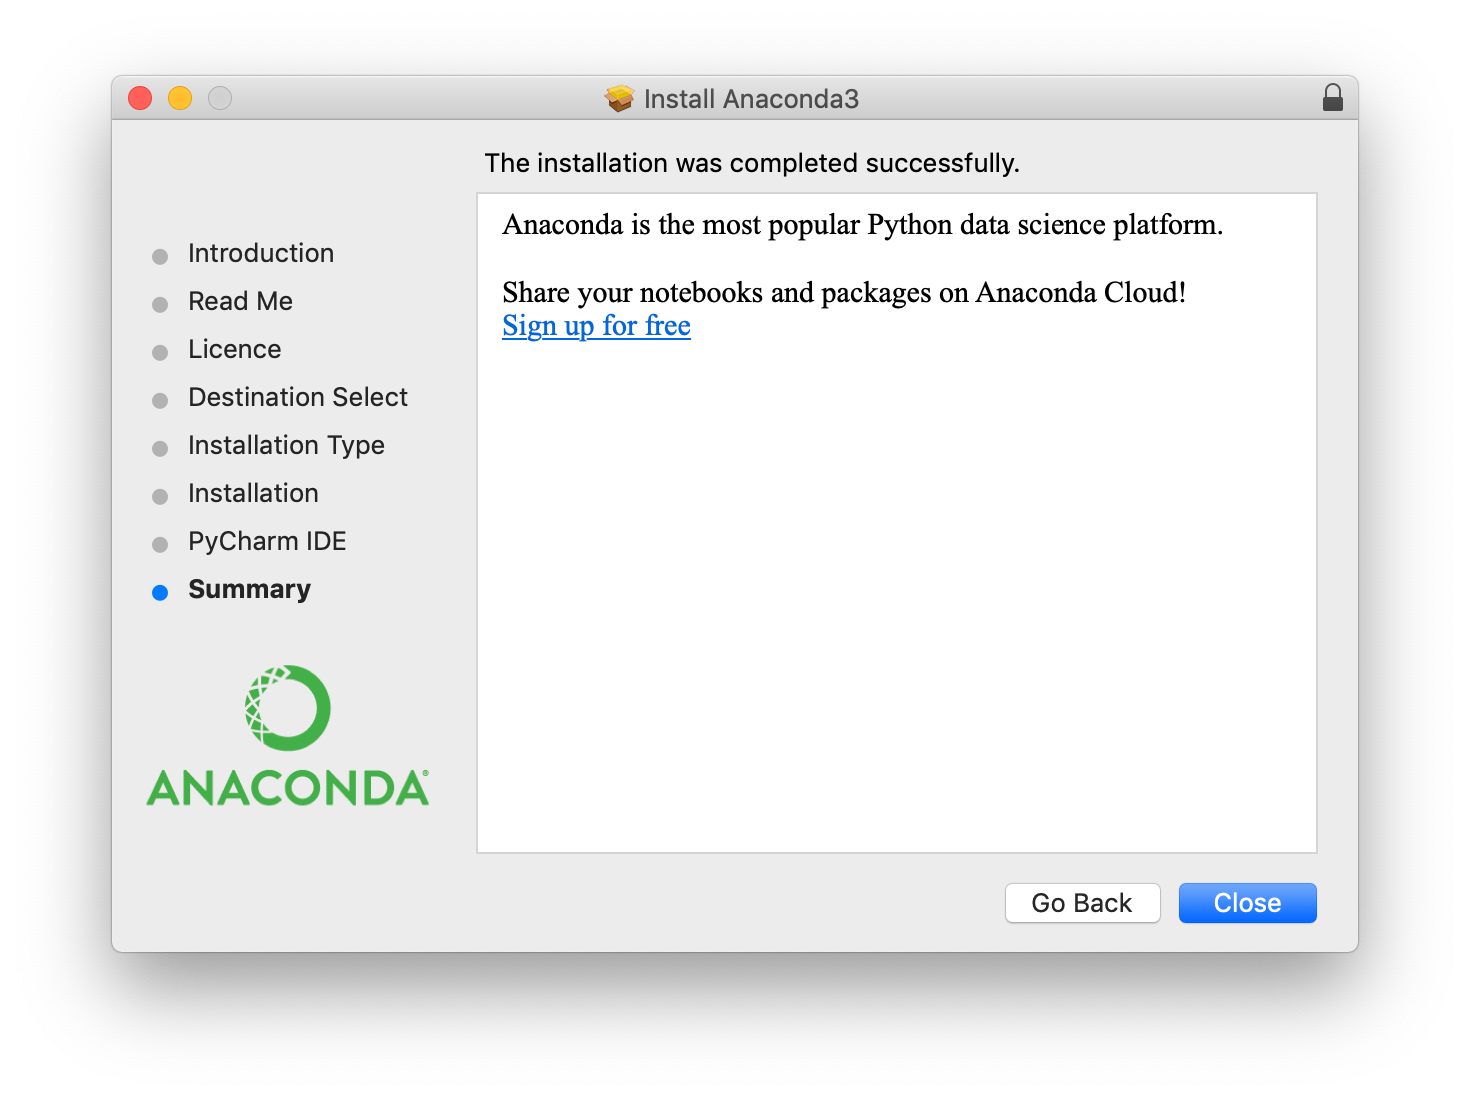 Anaconda installer success message